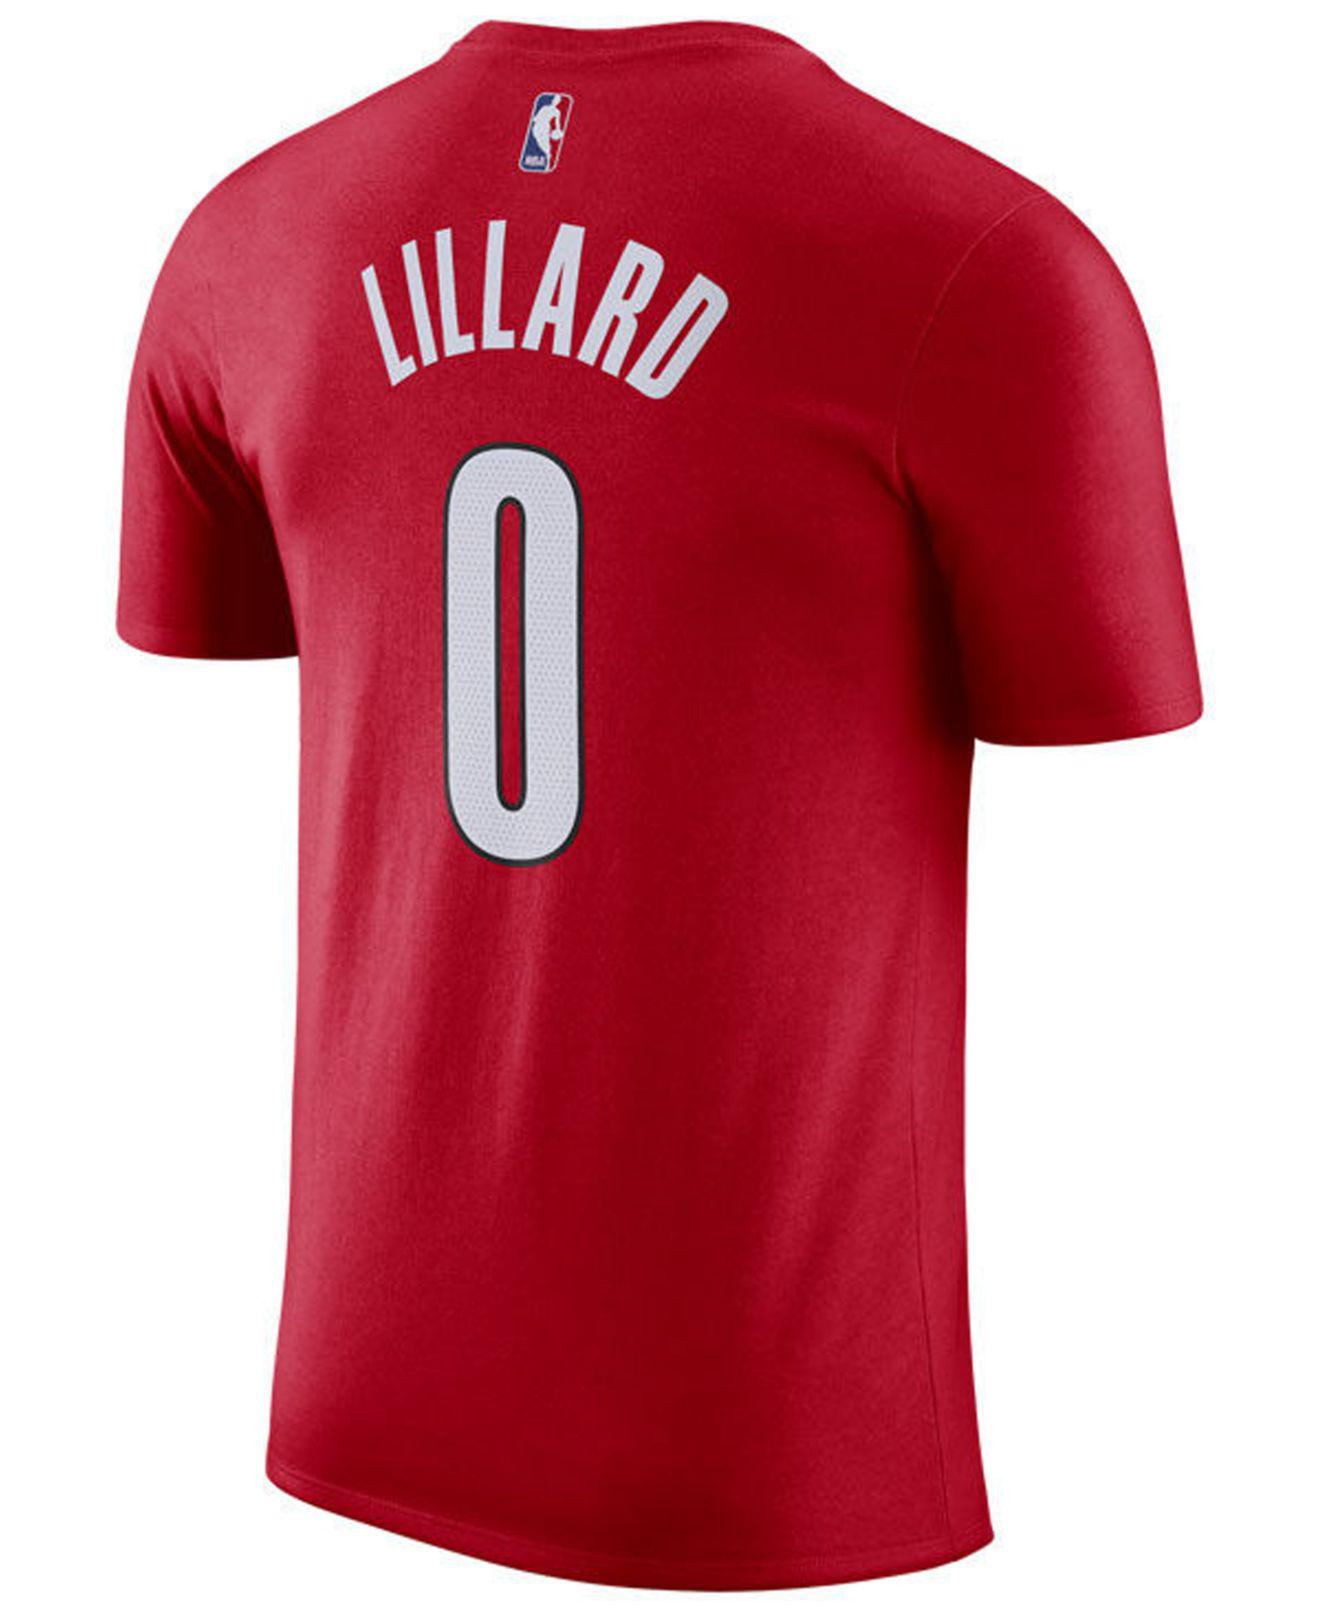 88f0c7b0f9e Nike. Men s Red Damian Lillard Portland Trail Blazers Earned Edition Player  T-shirt